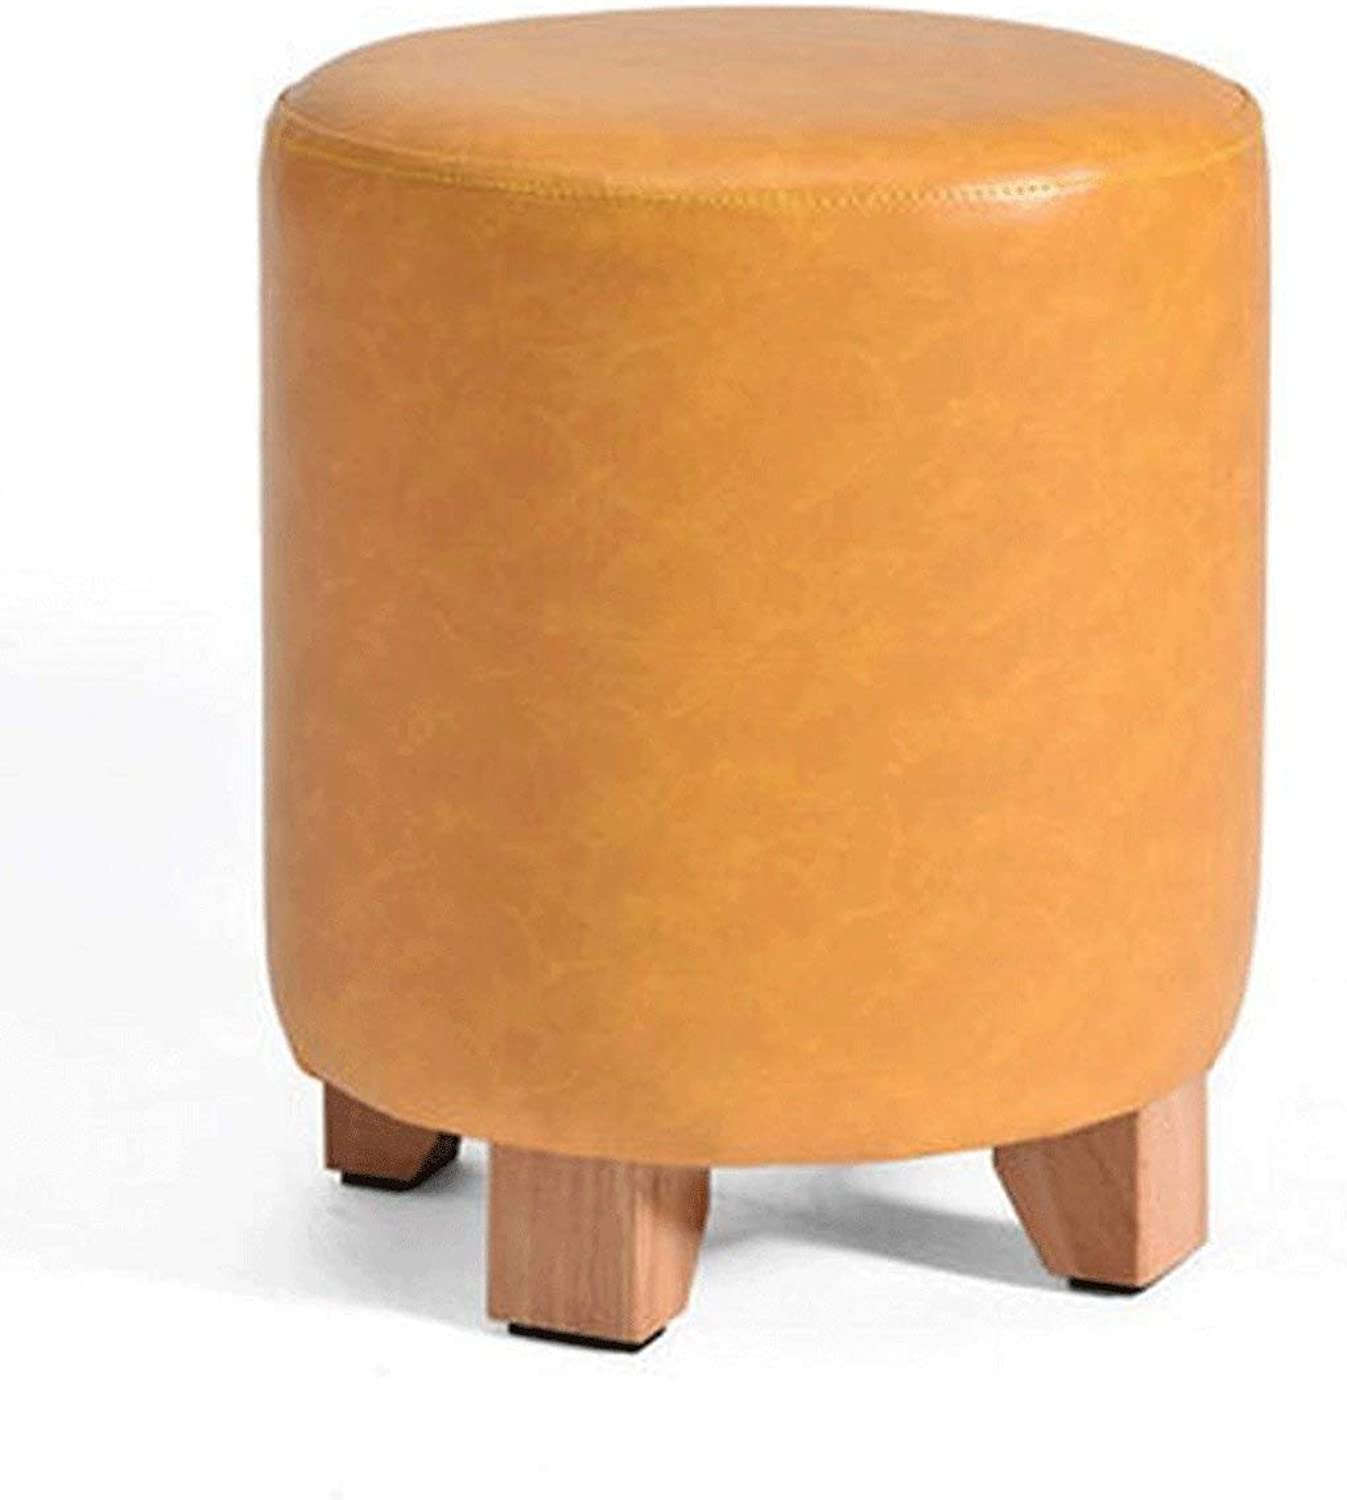 DYR Leather Stool in Solid Wood shoes Stool for Small Bench Stool in European Style Round Stool (color  A, Size  S)